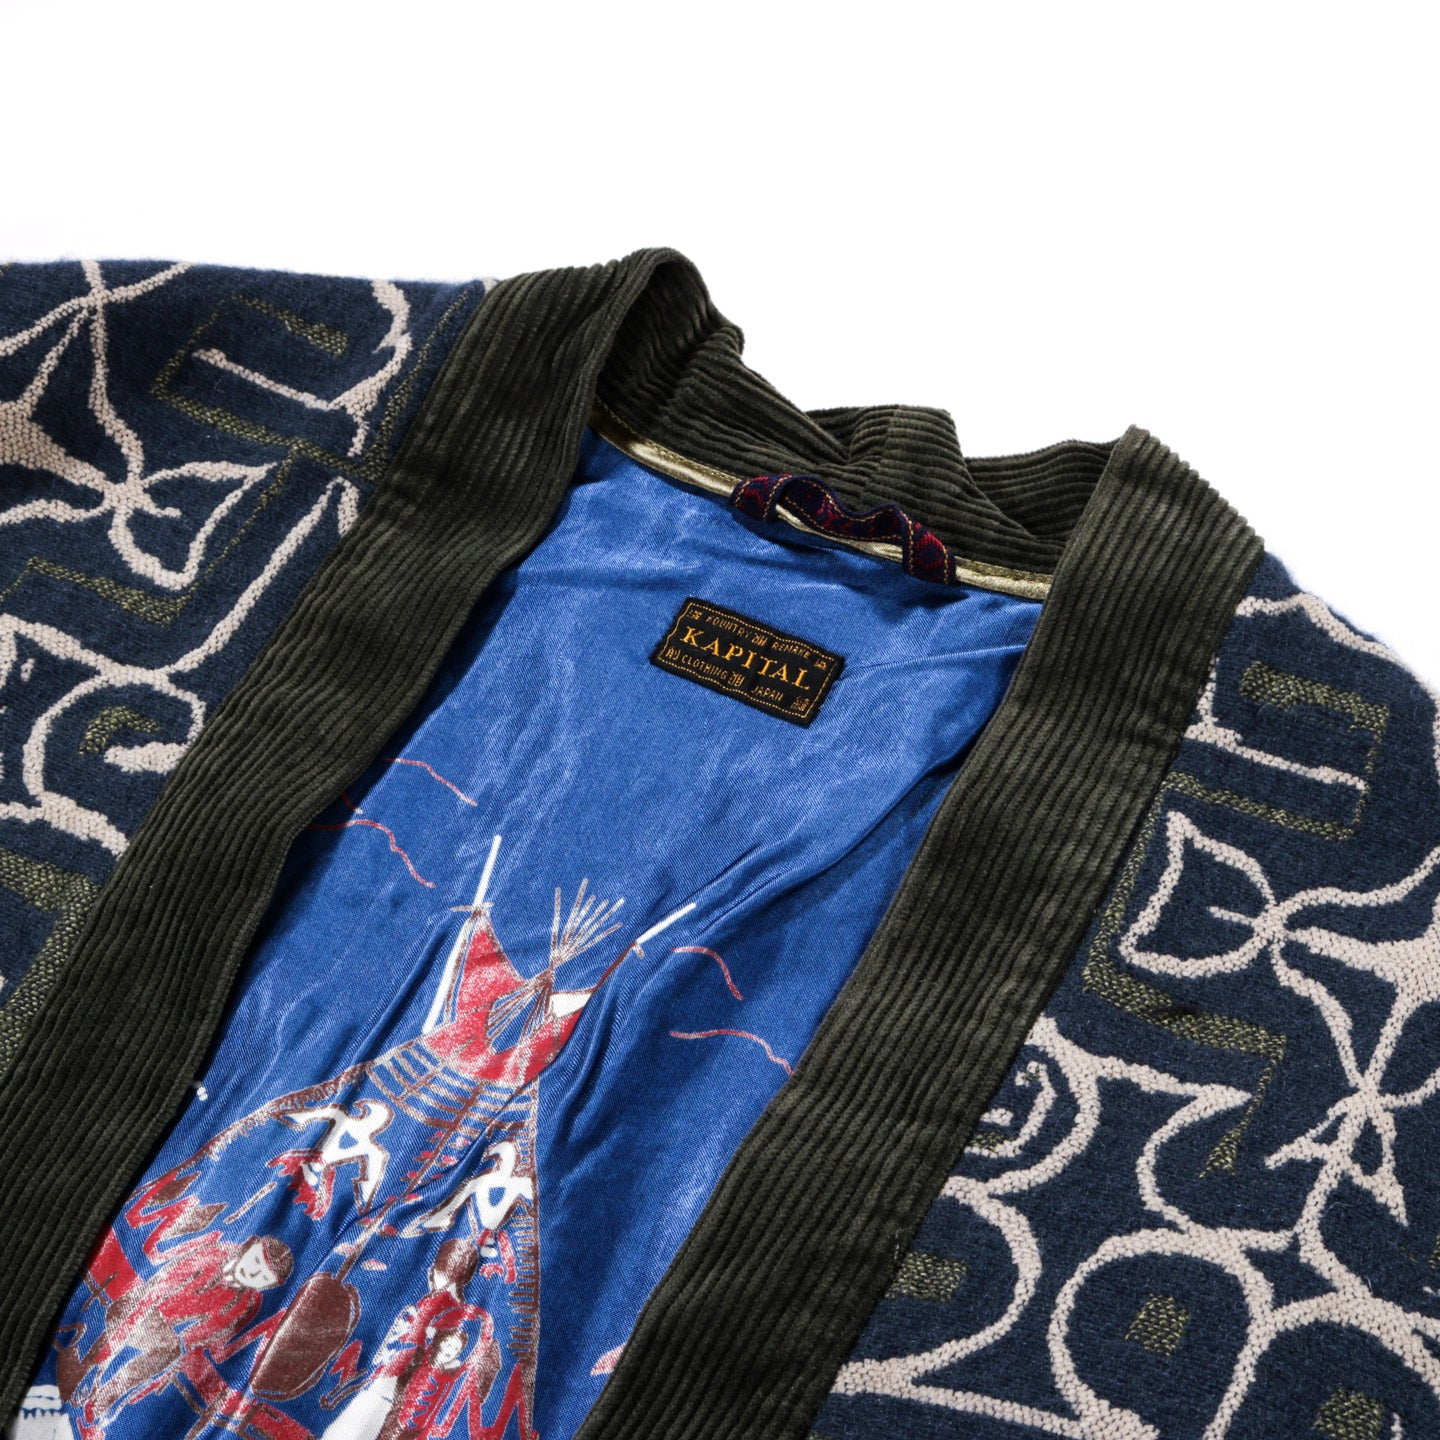 KAPITAL WOOL AINU BETSY ROSS SHA-KA JACKET GREEN